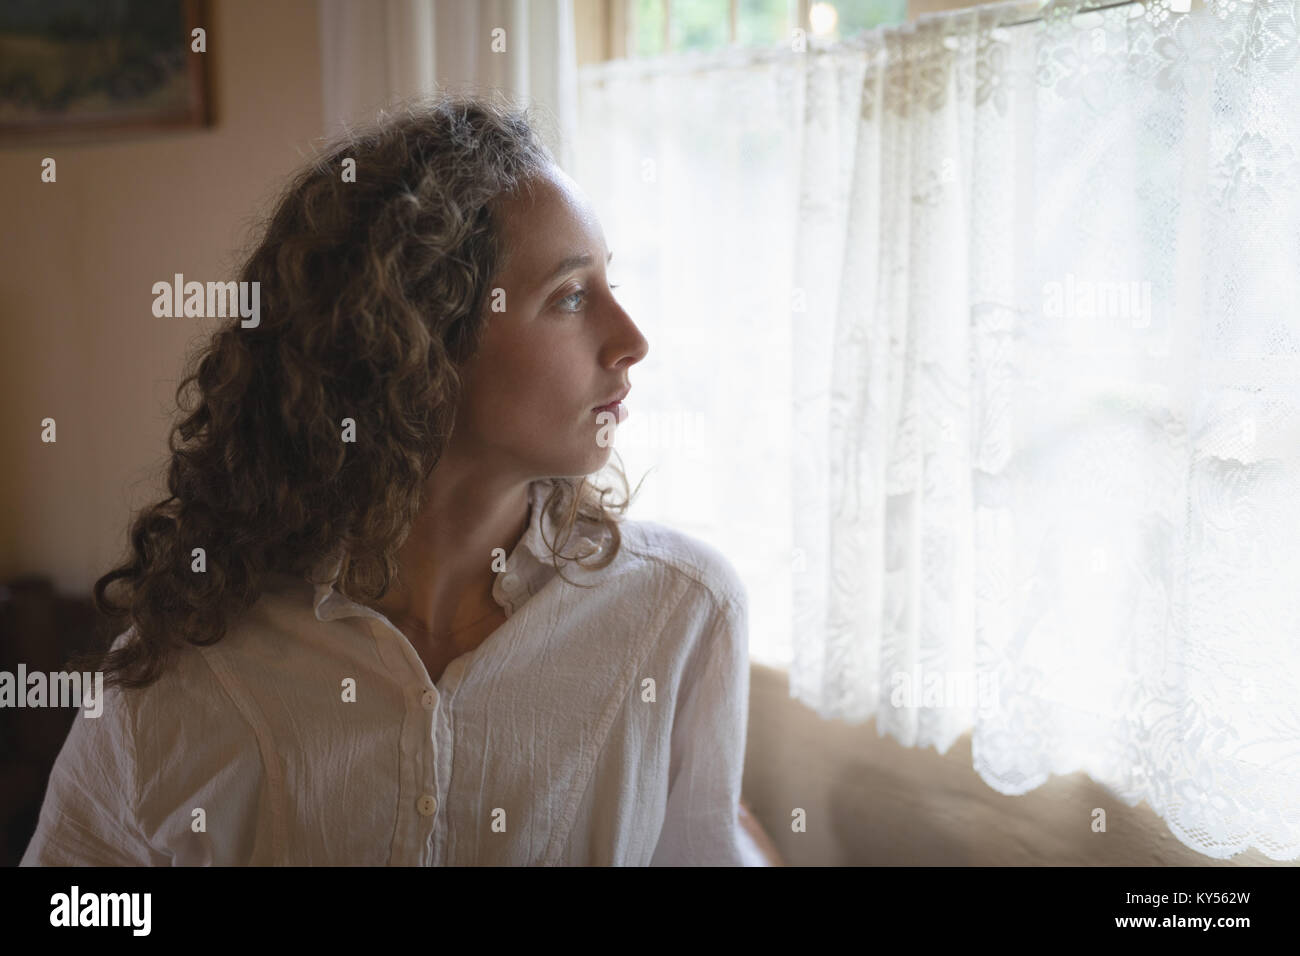 Woman looking through window in living room - Stock Image